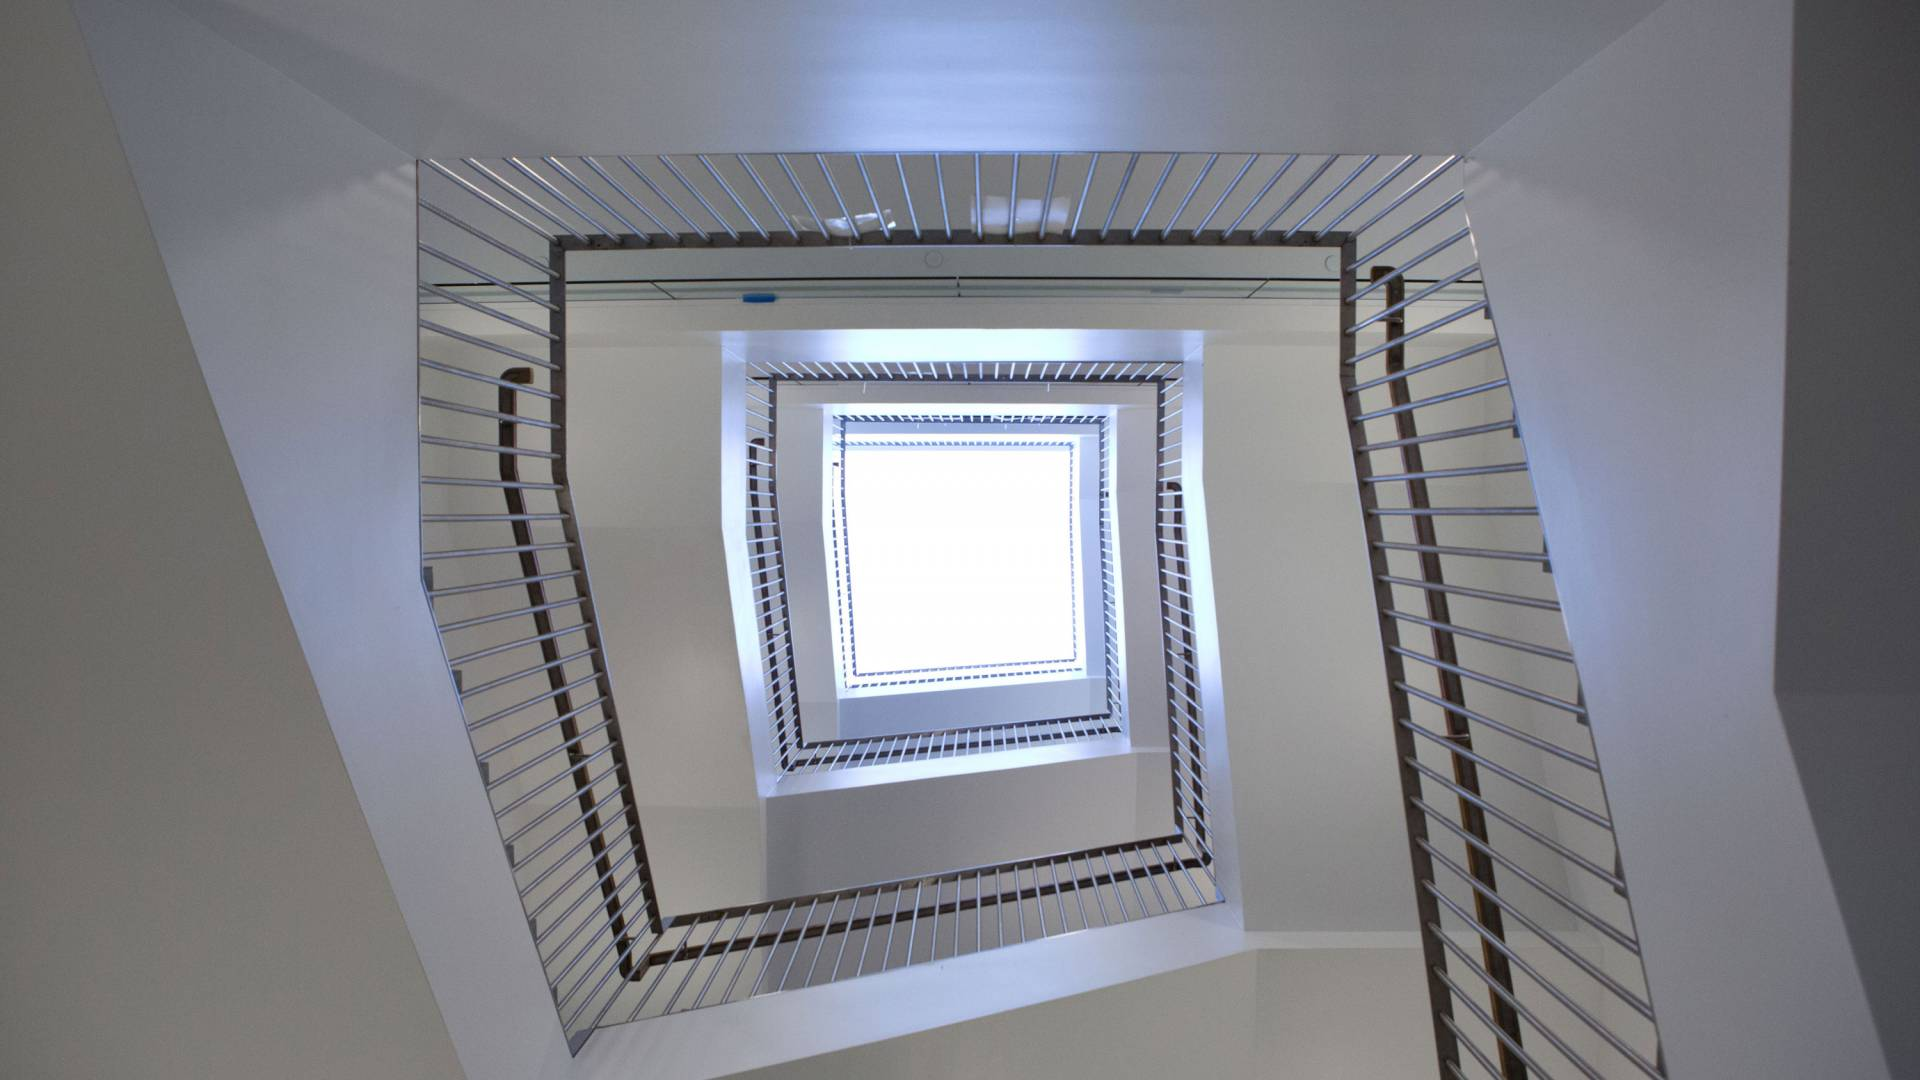 Looking up at a skylight surrounded by a staircase